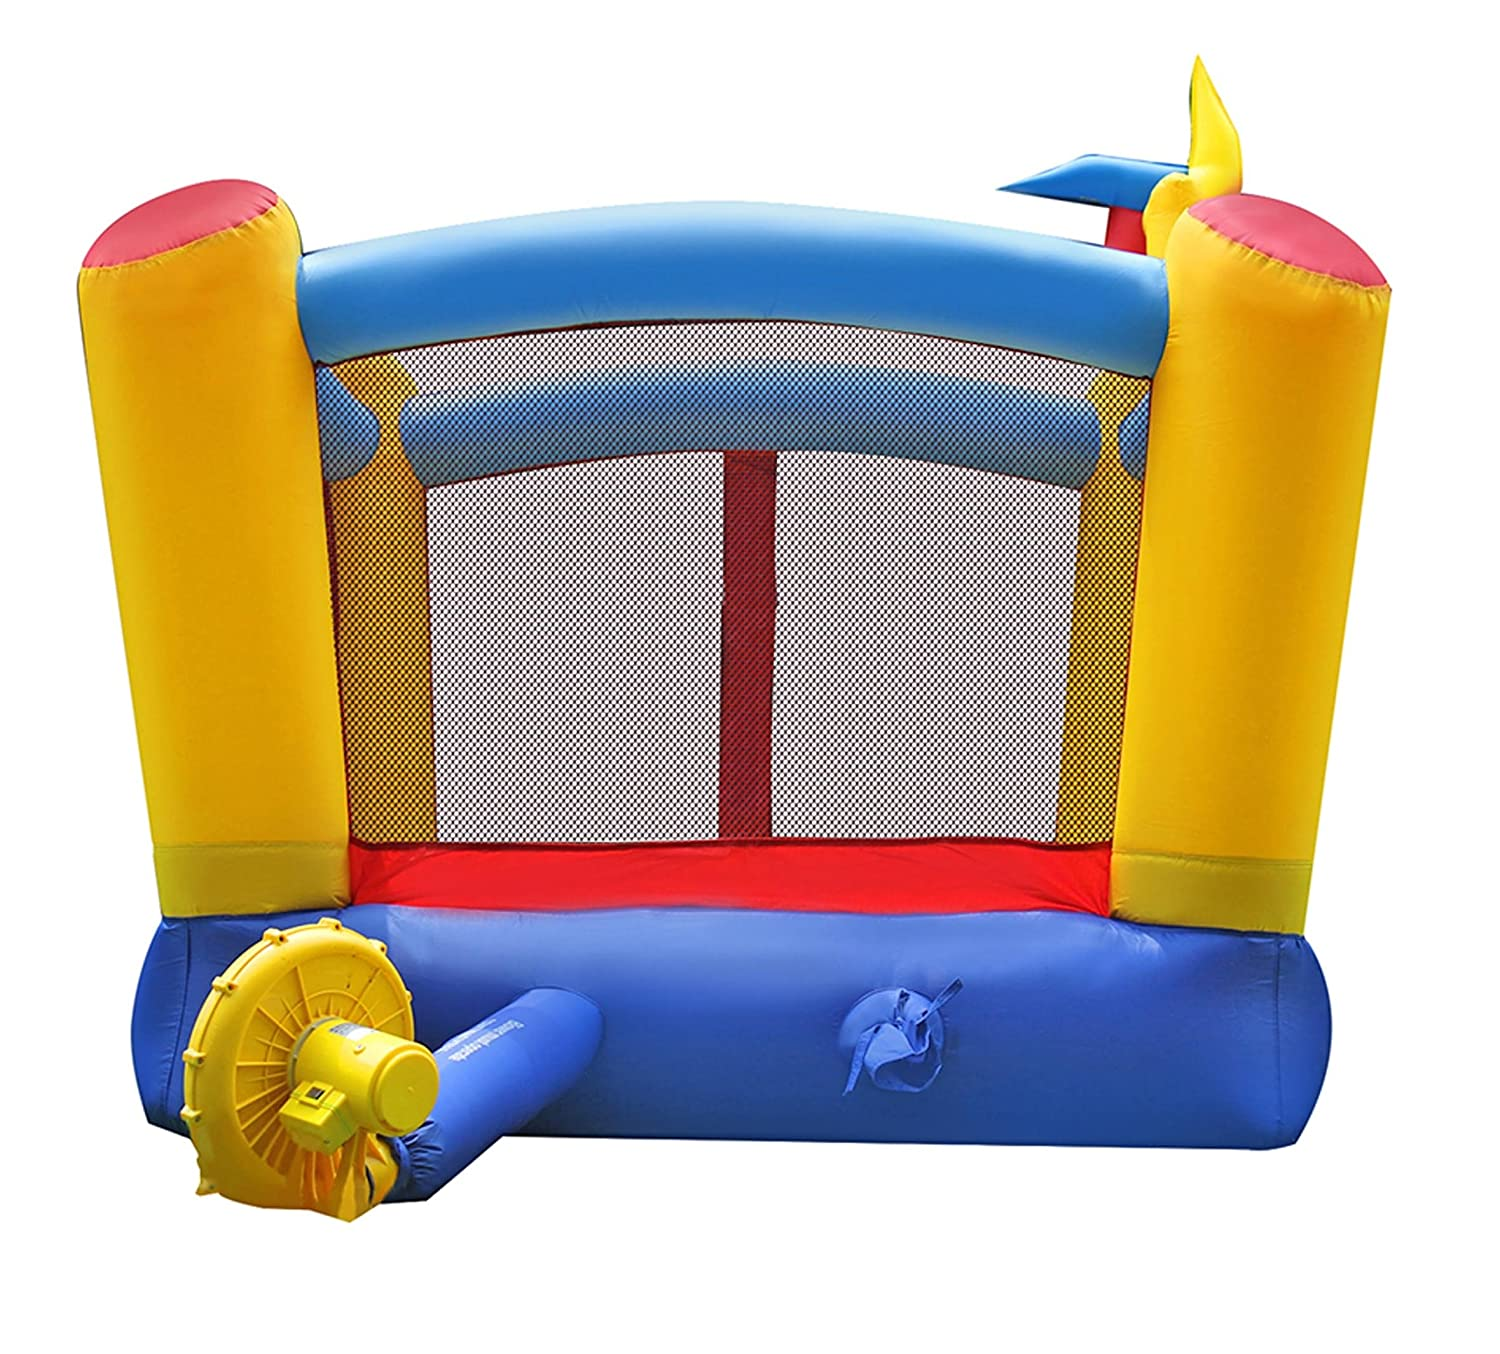 Amazon.com: BestParty Bounce House with Rotating Windmill,With ...